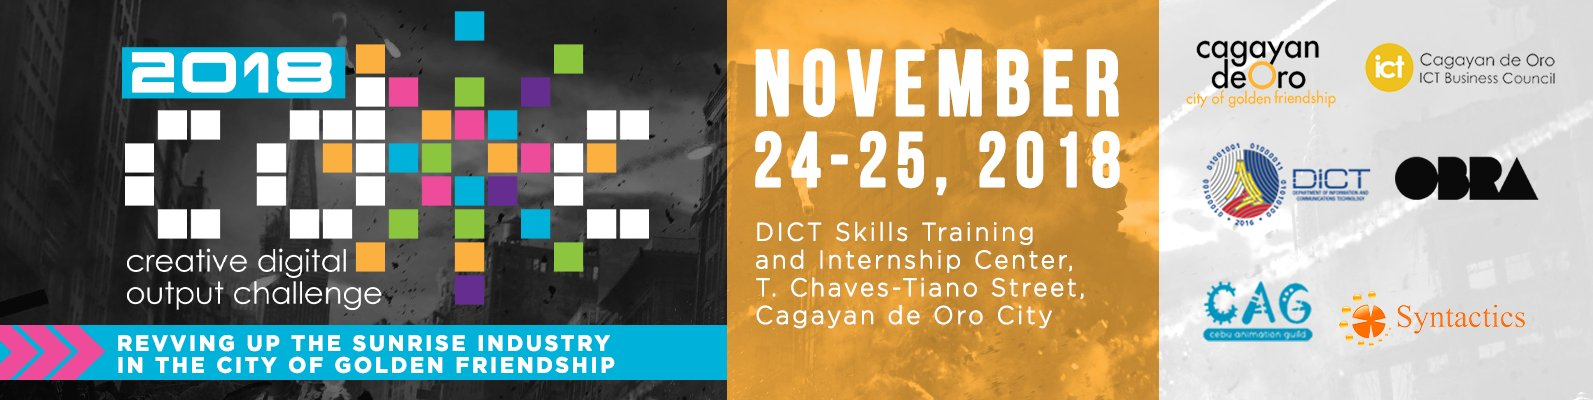 2018 Creative Digital Output Challenge Contest hosted by DICT and sponsored by Syntactics, OBRA, and CAG